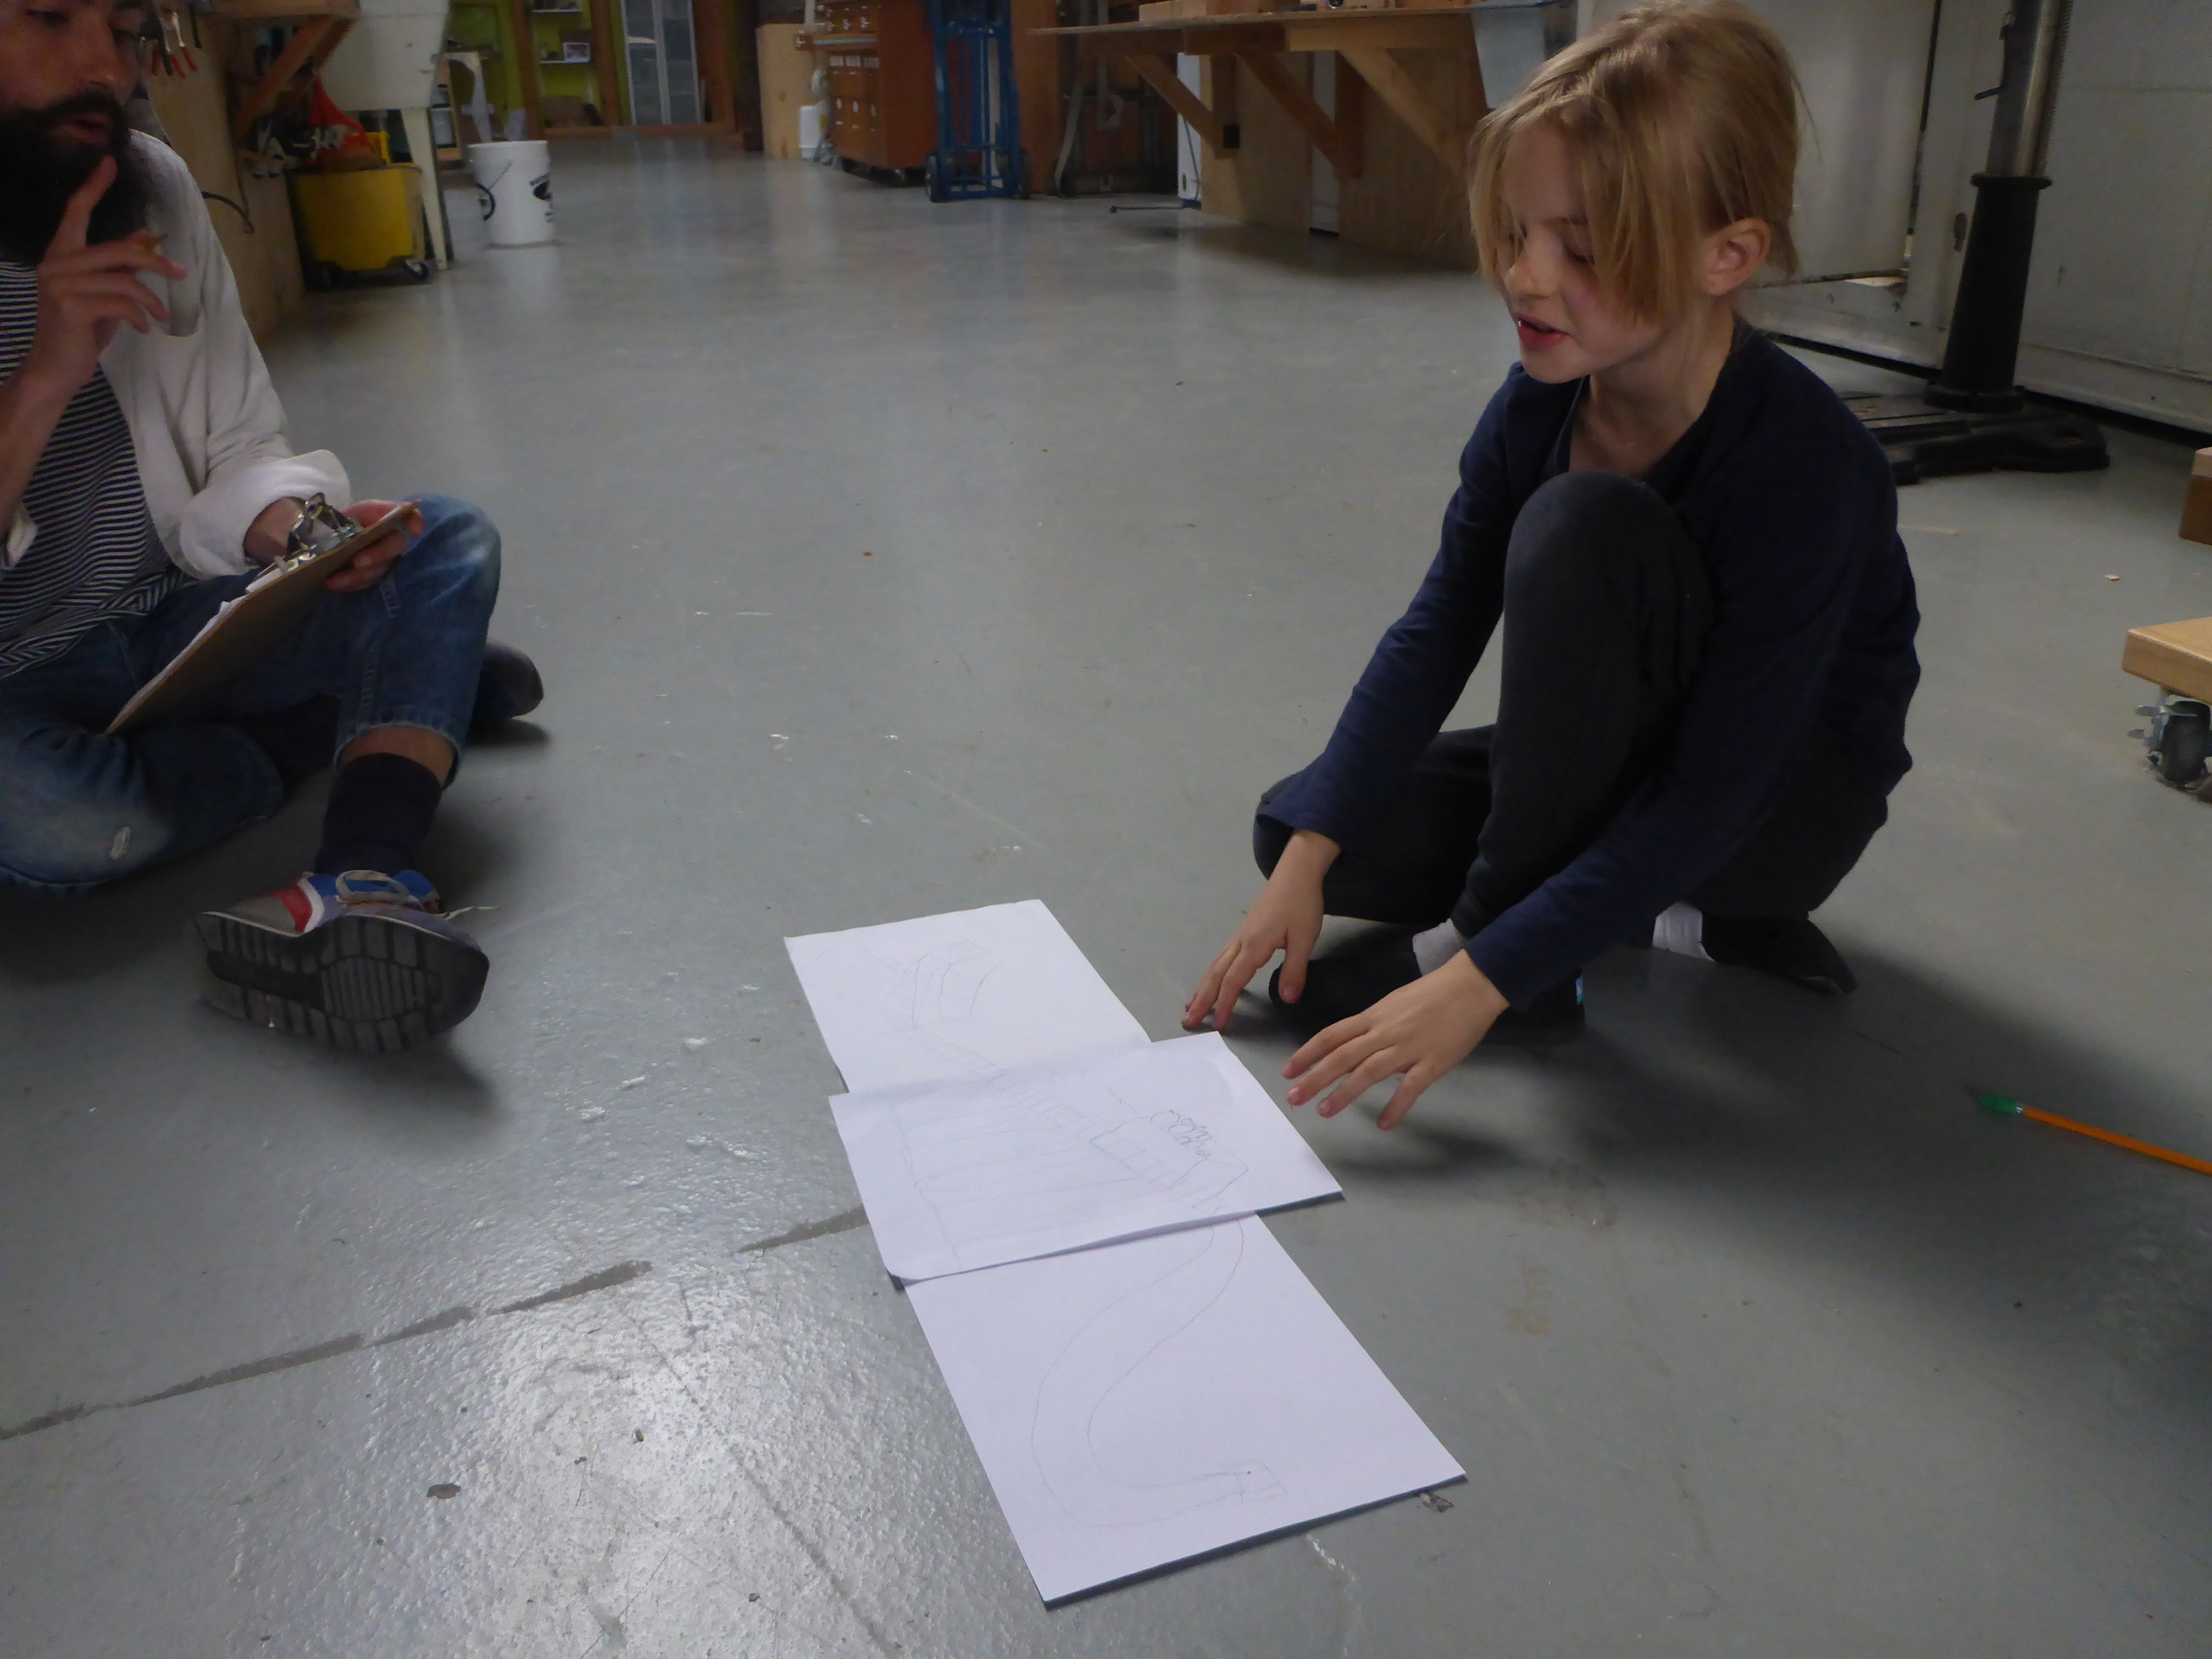 Big idea's require big designs. Ida's car on a track design expands across three pages just to hold all her ideas!